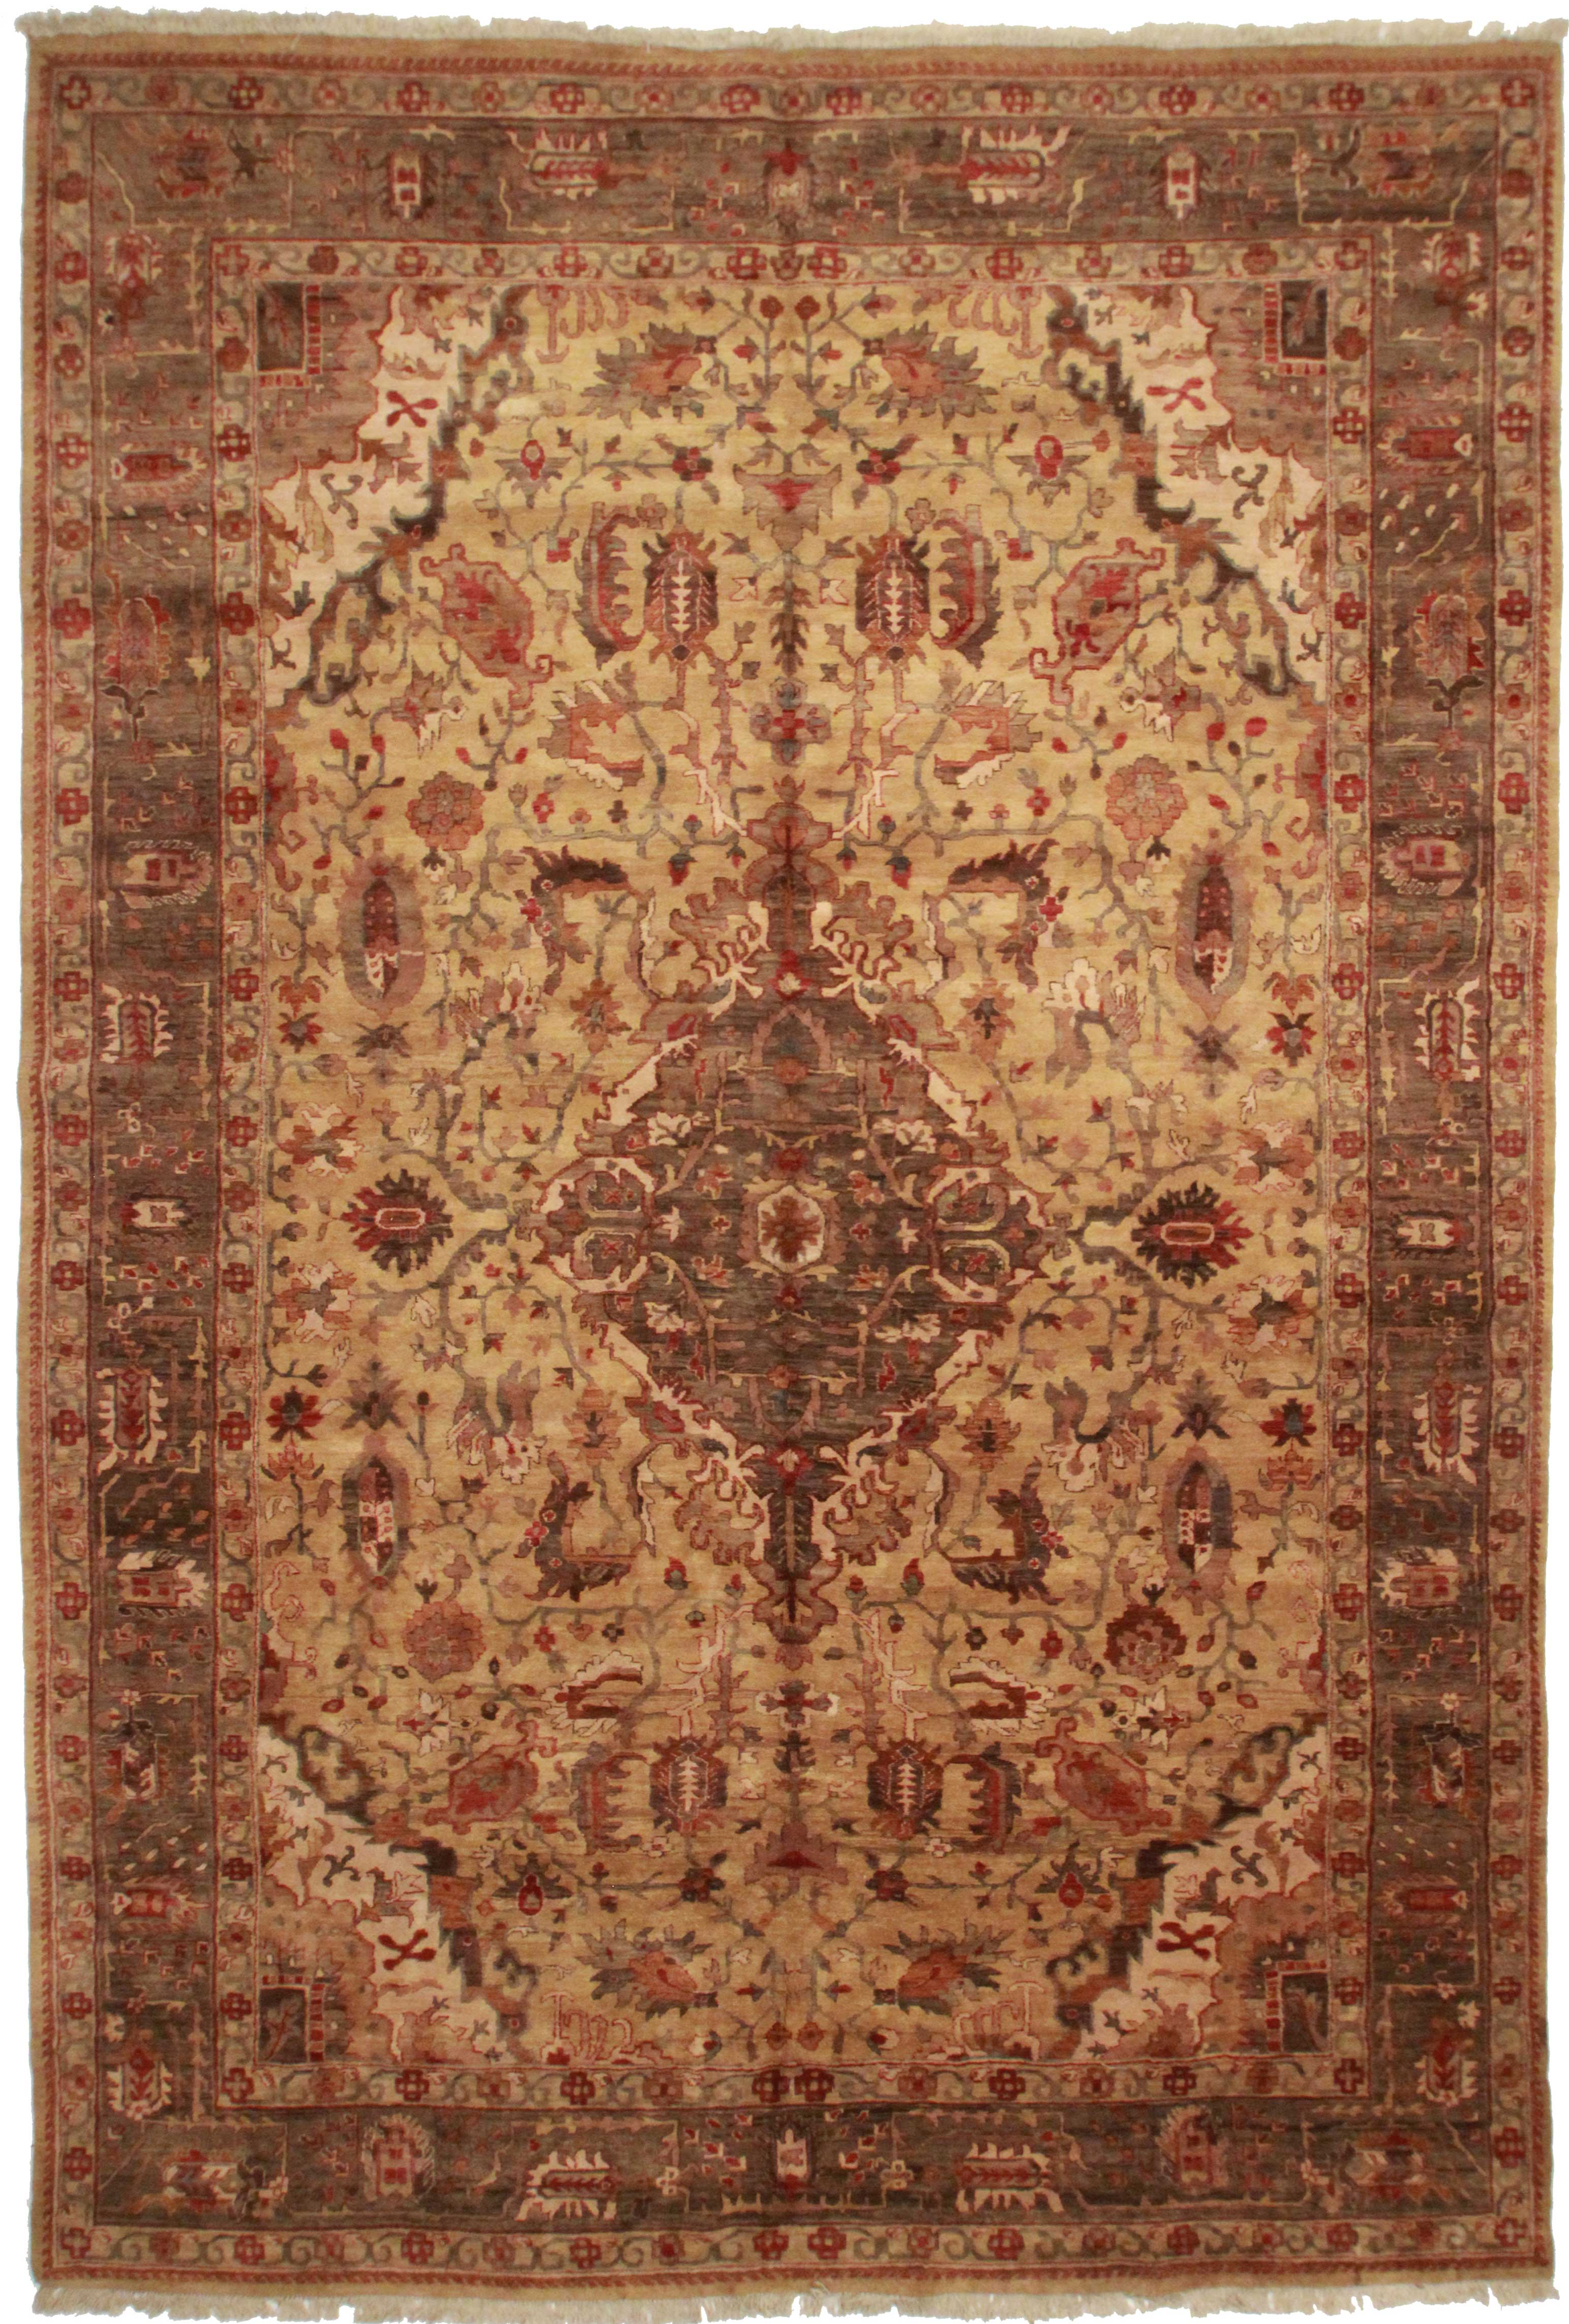 11 x 16 persian style wool rug 13810 exclusive oriental rugs for Home inspired by india rug